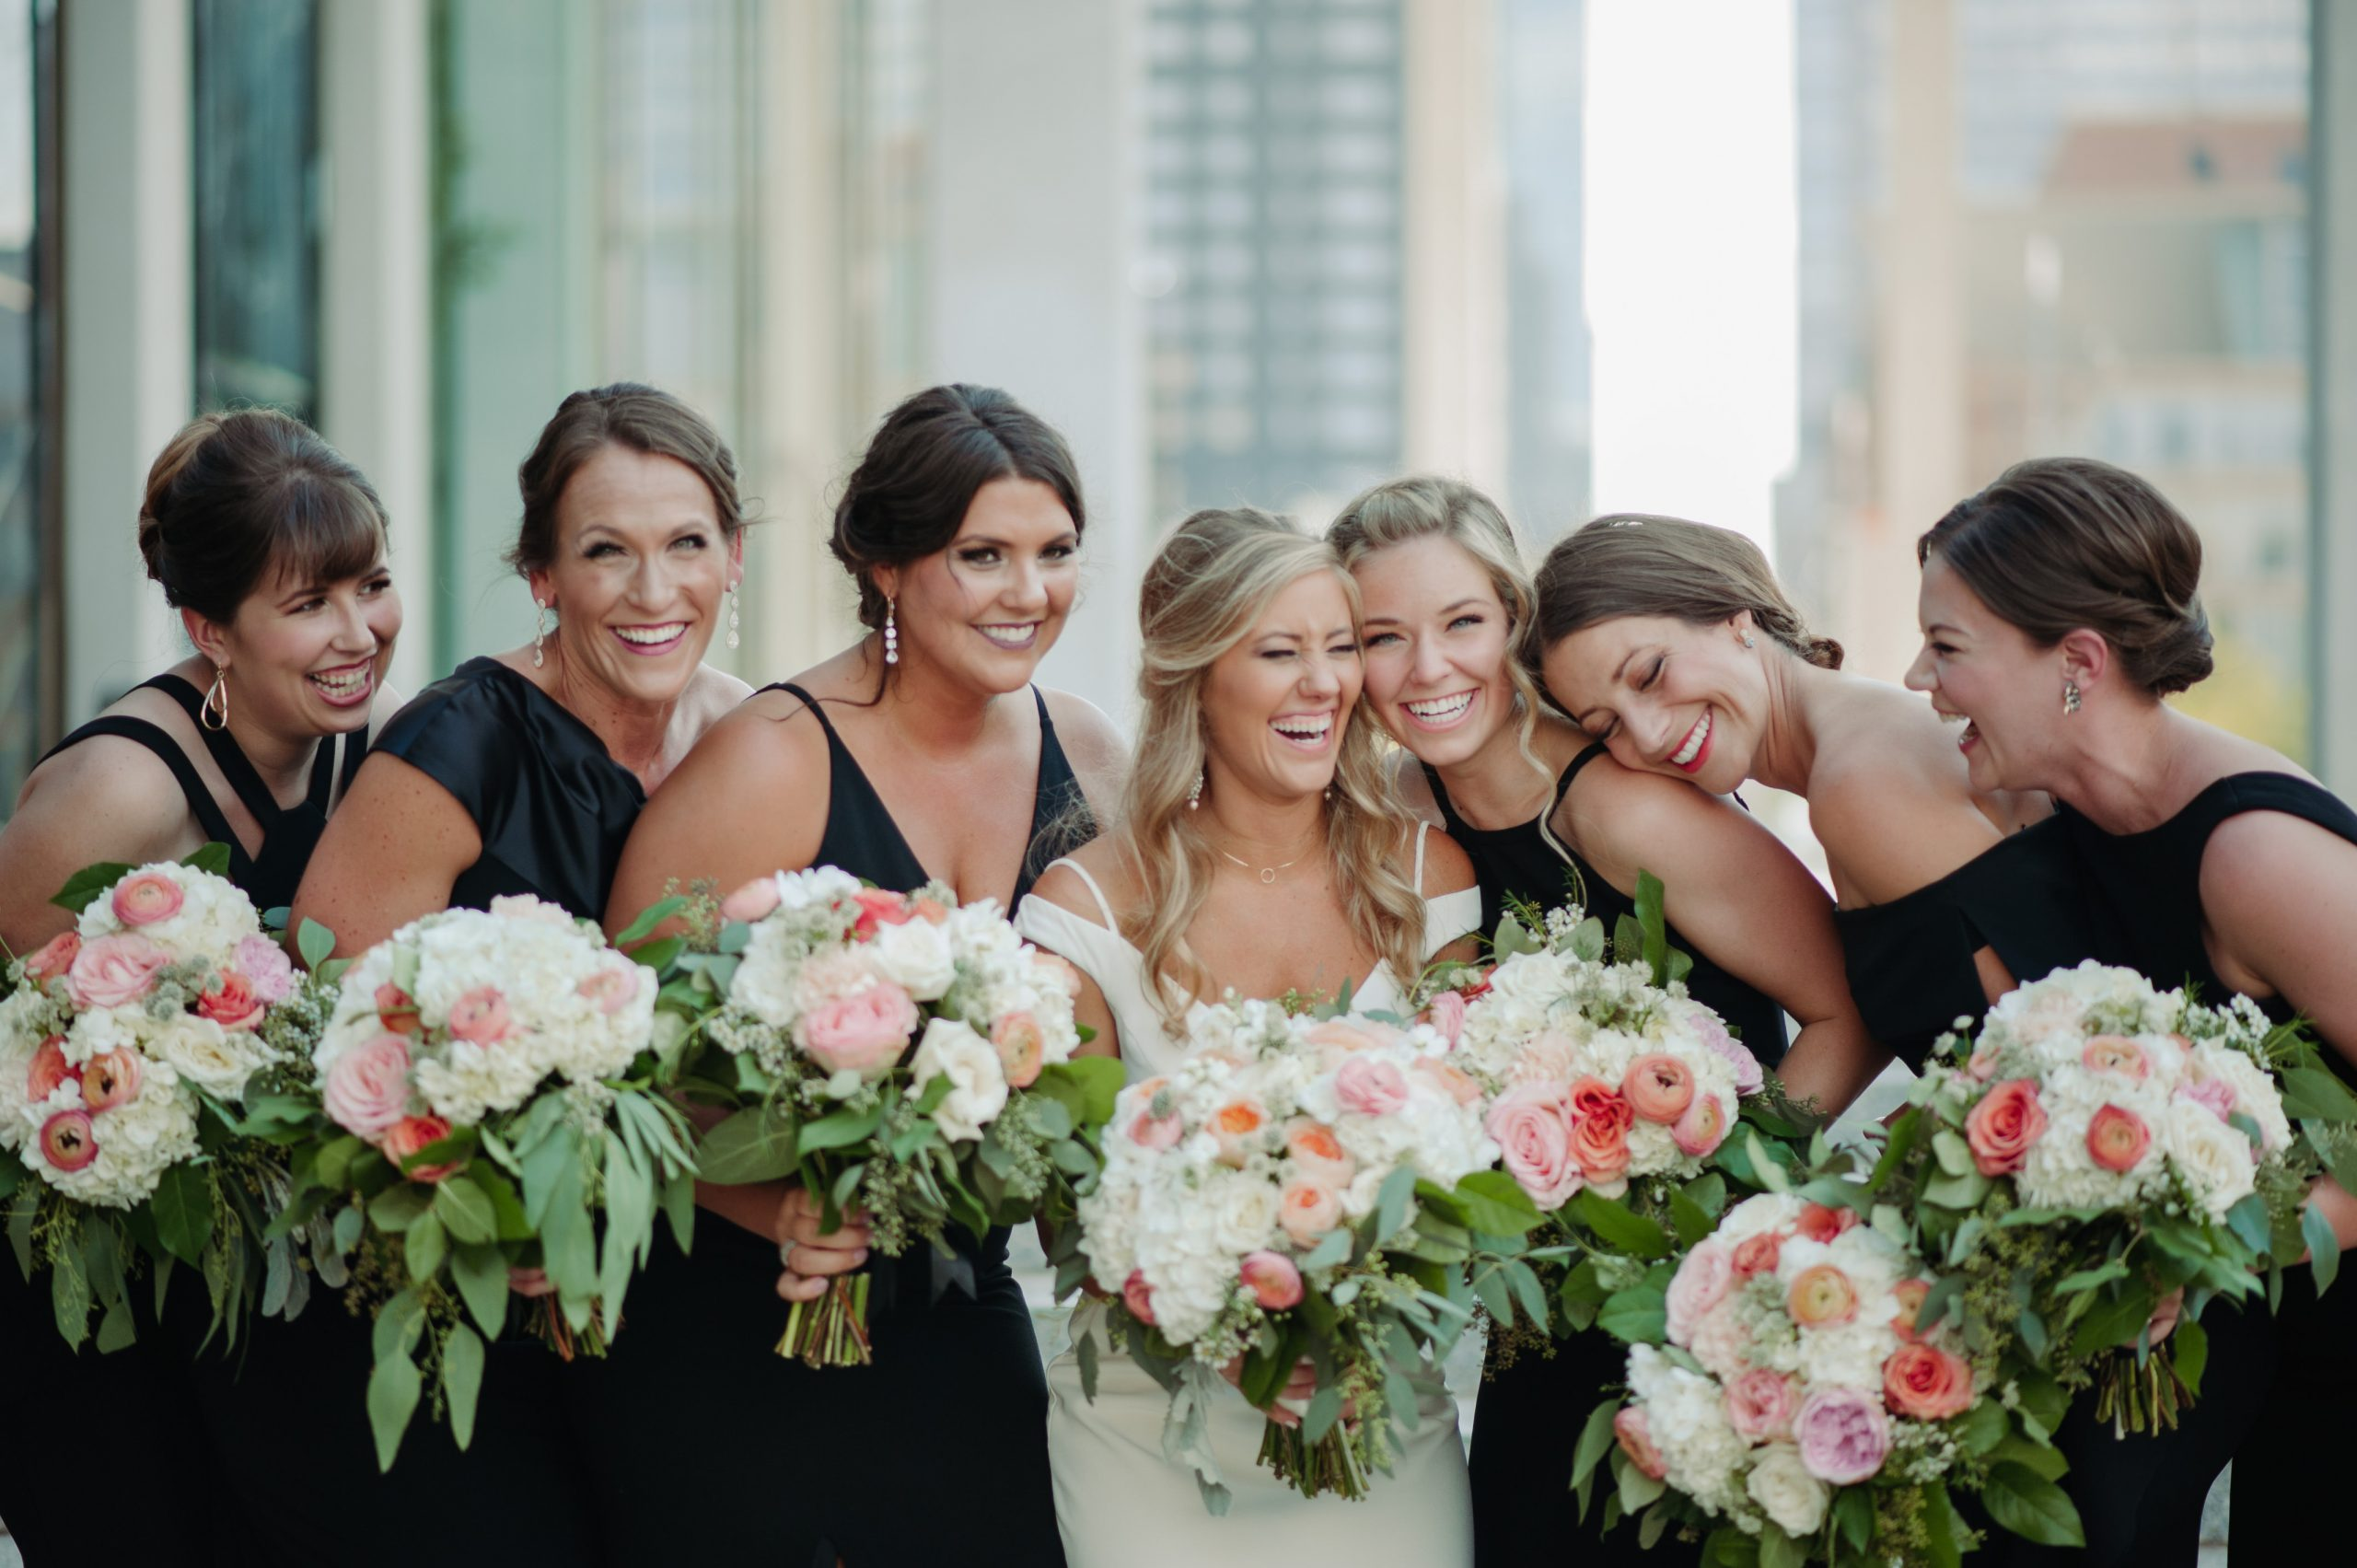 bridesmaids laughing minneapolis minnesota wedding with bouquets